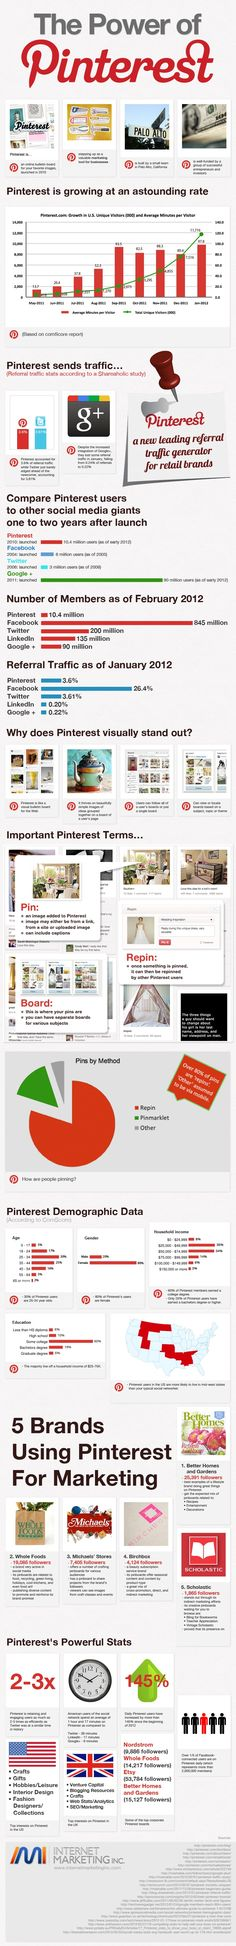 How Does Pinterest Compare To Twitter, Facebook, LinkedIn And Google+? [INFOGRAPHIC]